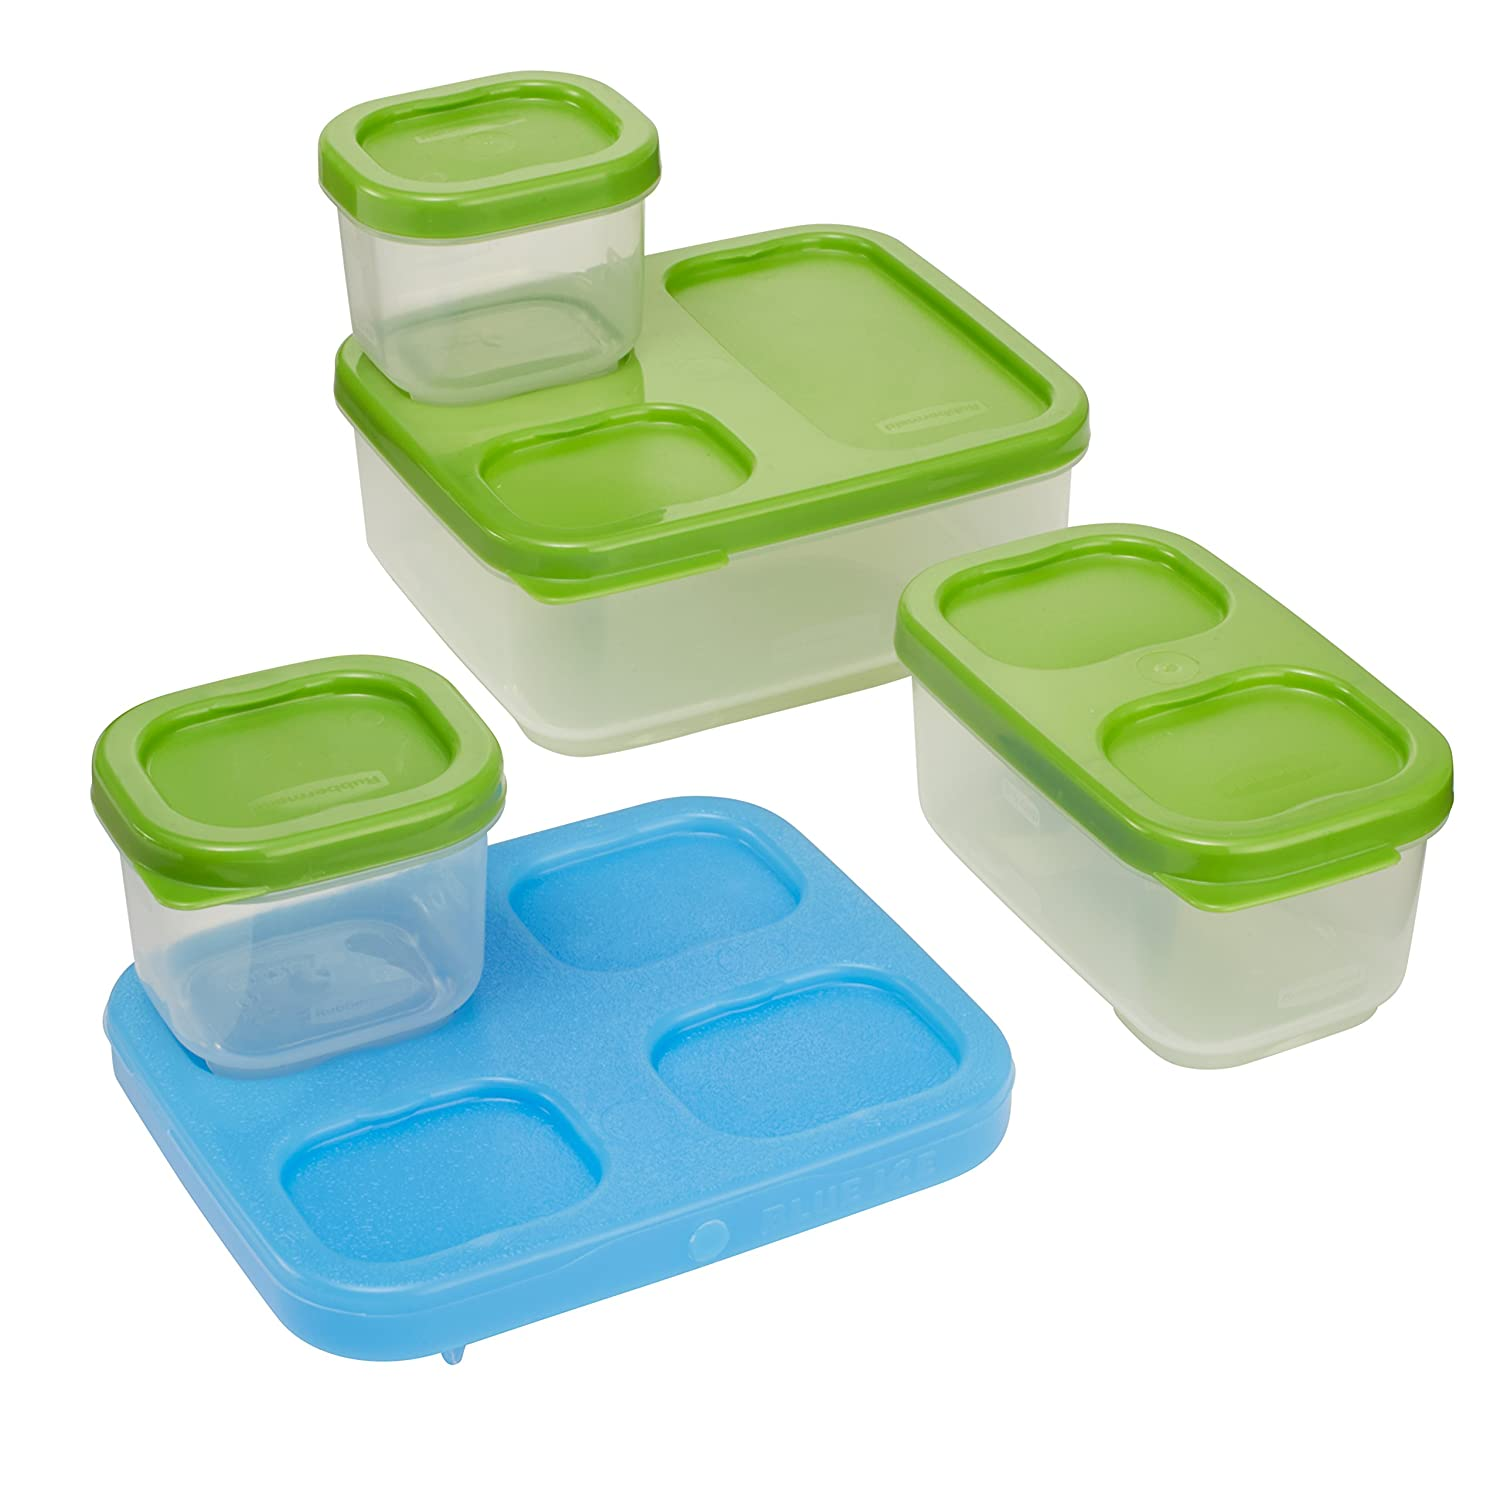 Amazon.com: Rubbermaid LunchBlox Sandwich Kit, Green 1806231: Lunch ...